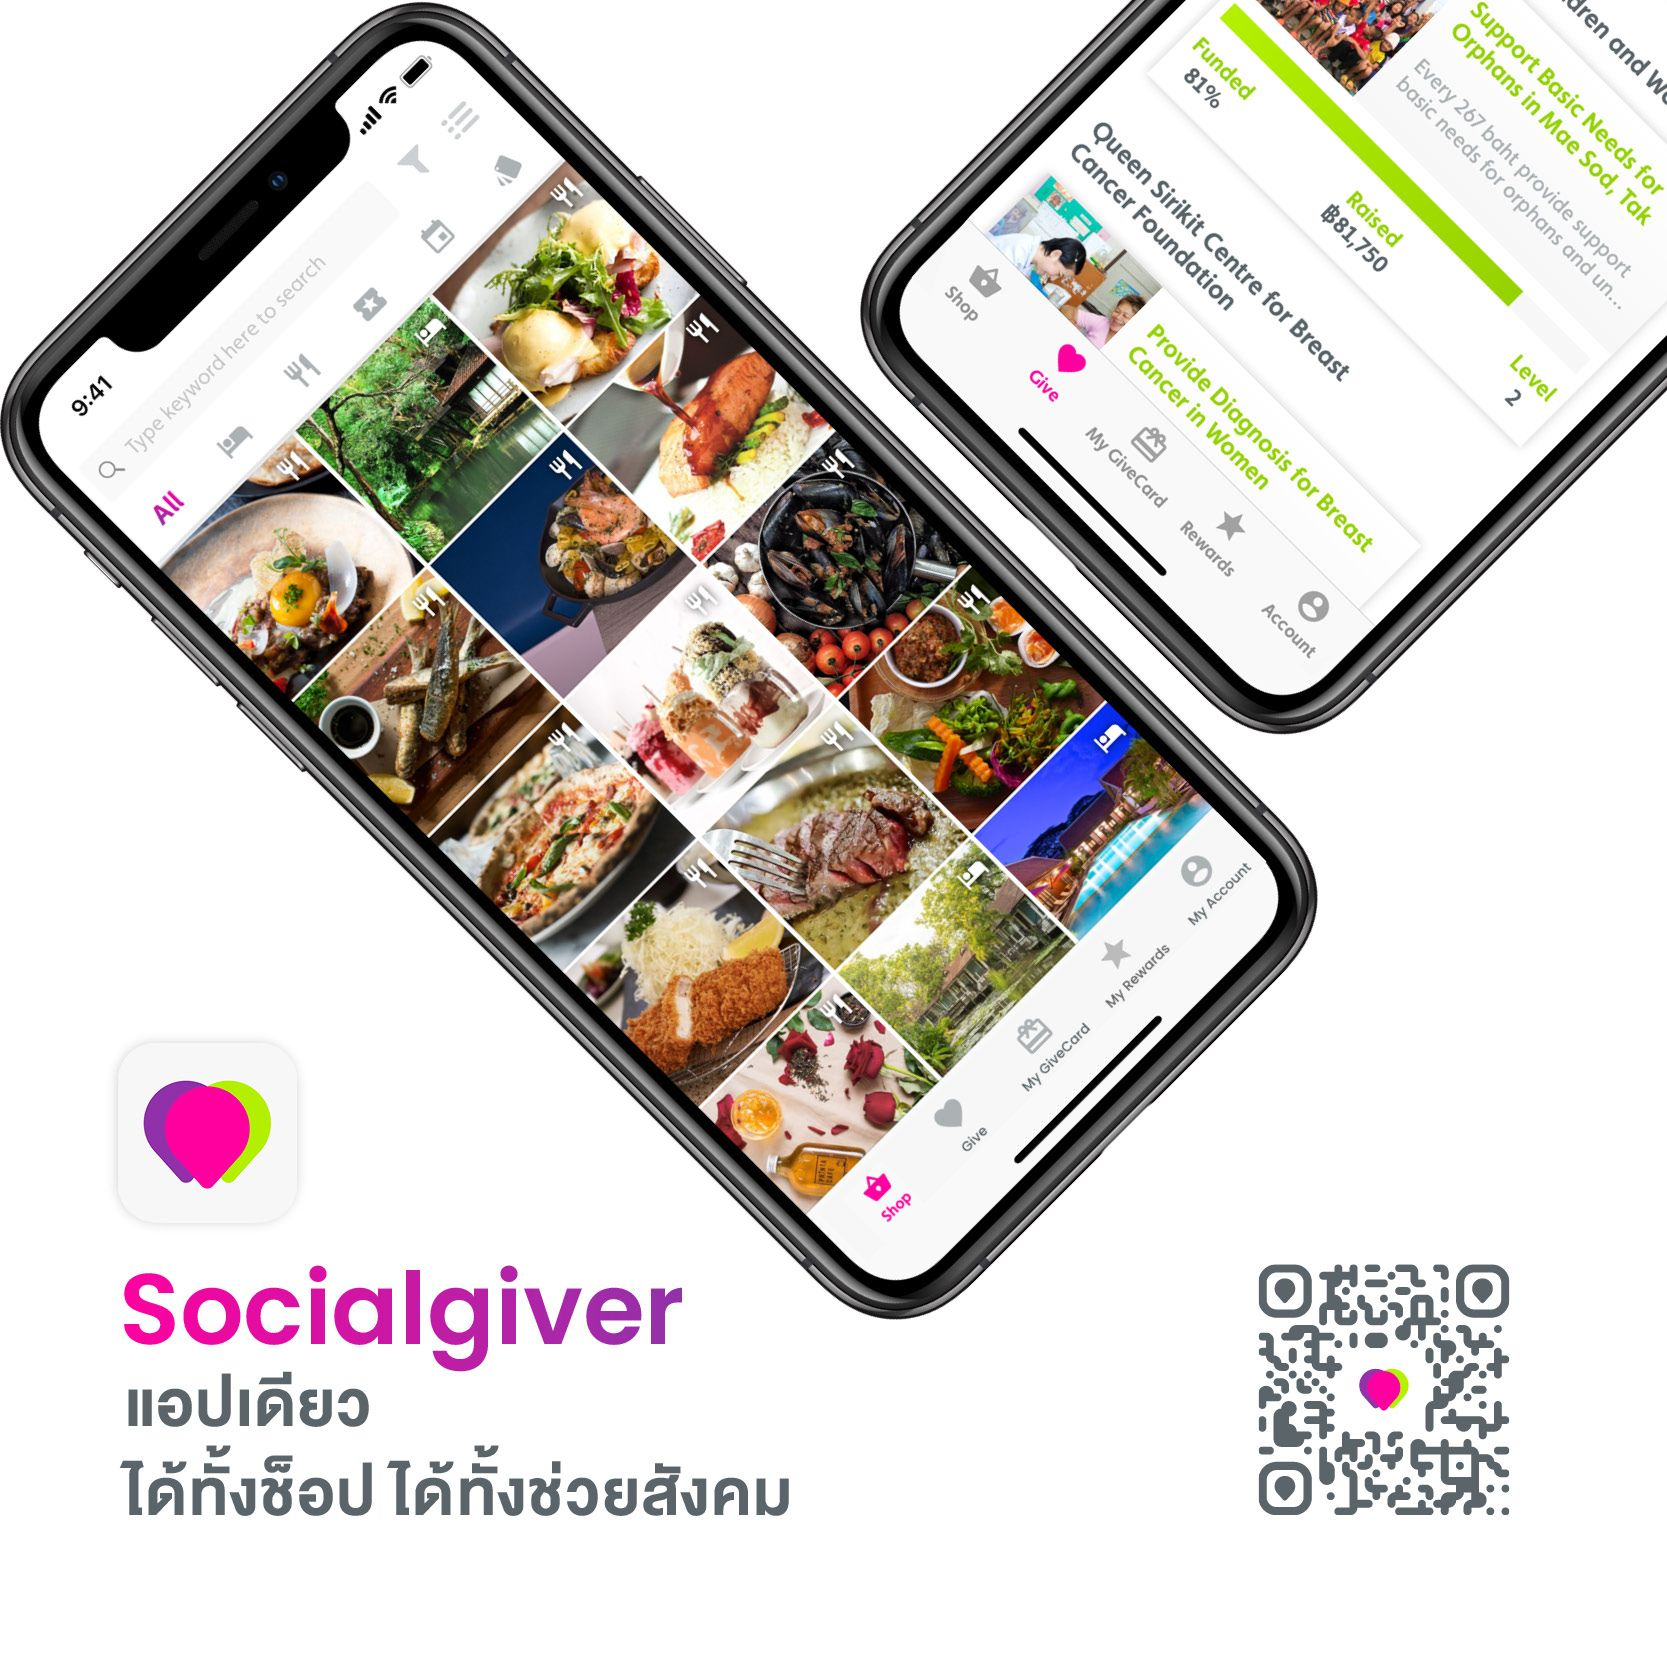 Do Good, Get Goods: Socialgiver Launches Charity Market At CentralWorld